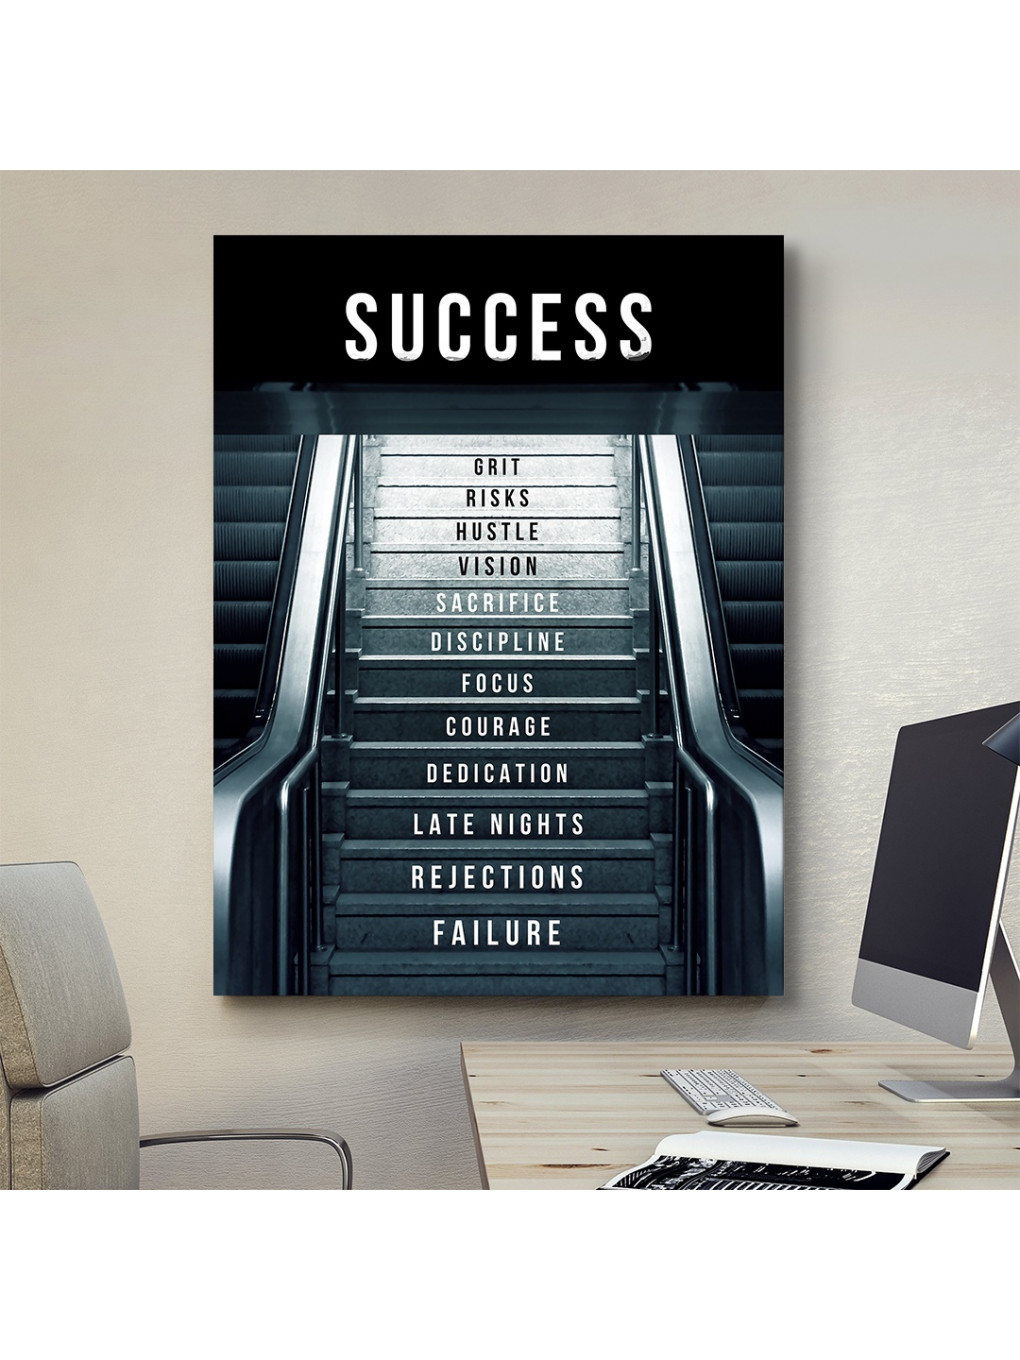 Take the Stairs - Success_SUC084_2